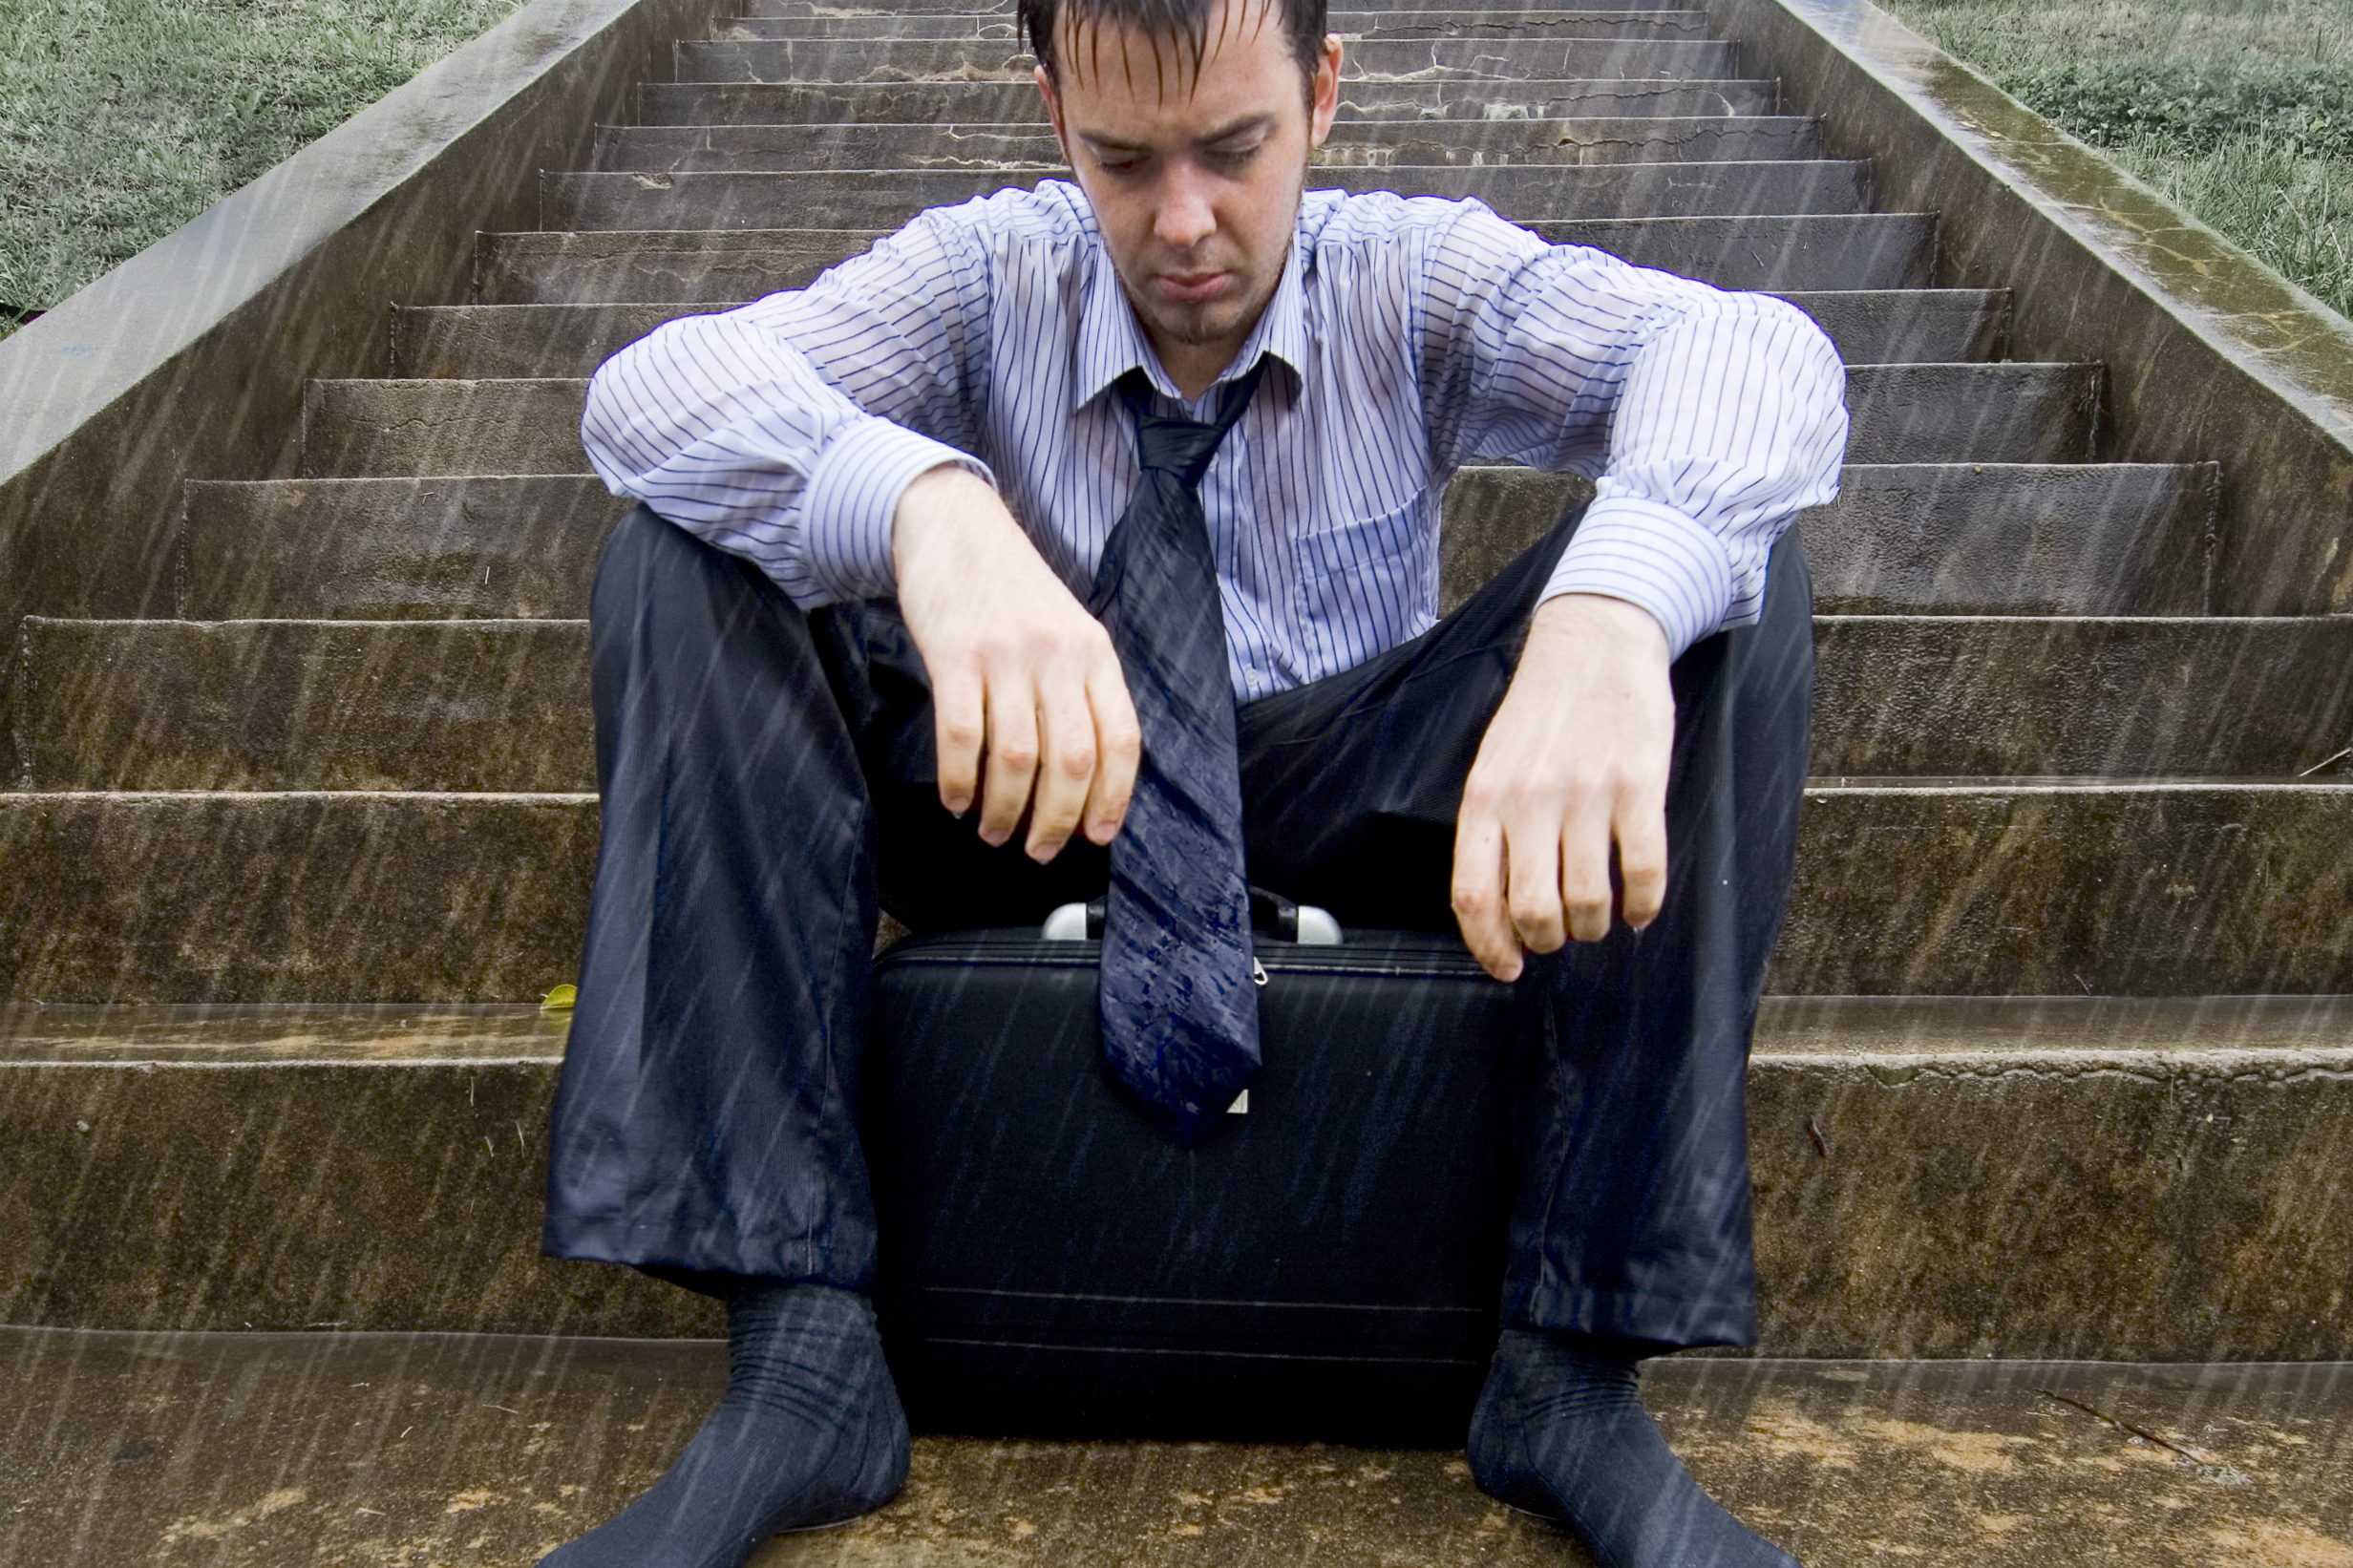 A businessman sits in the pouring rain